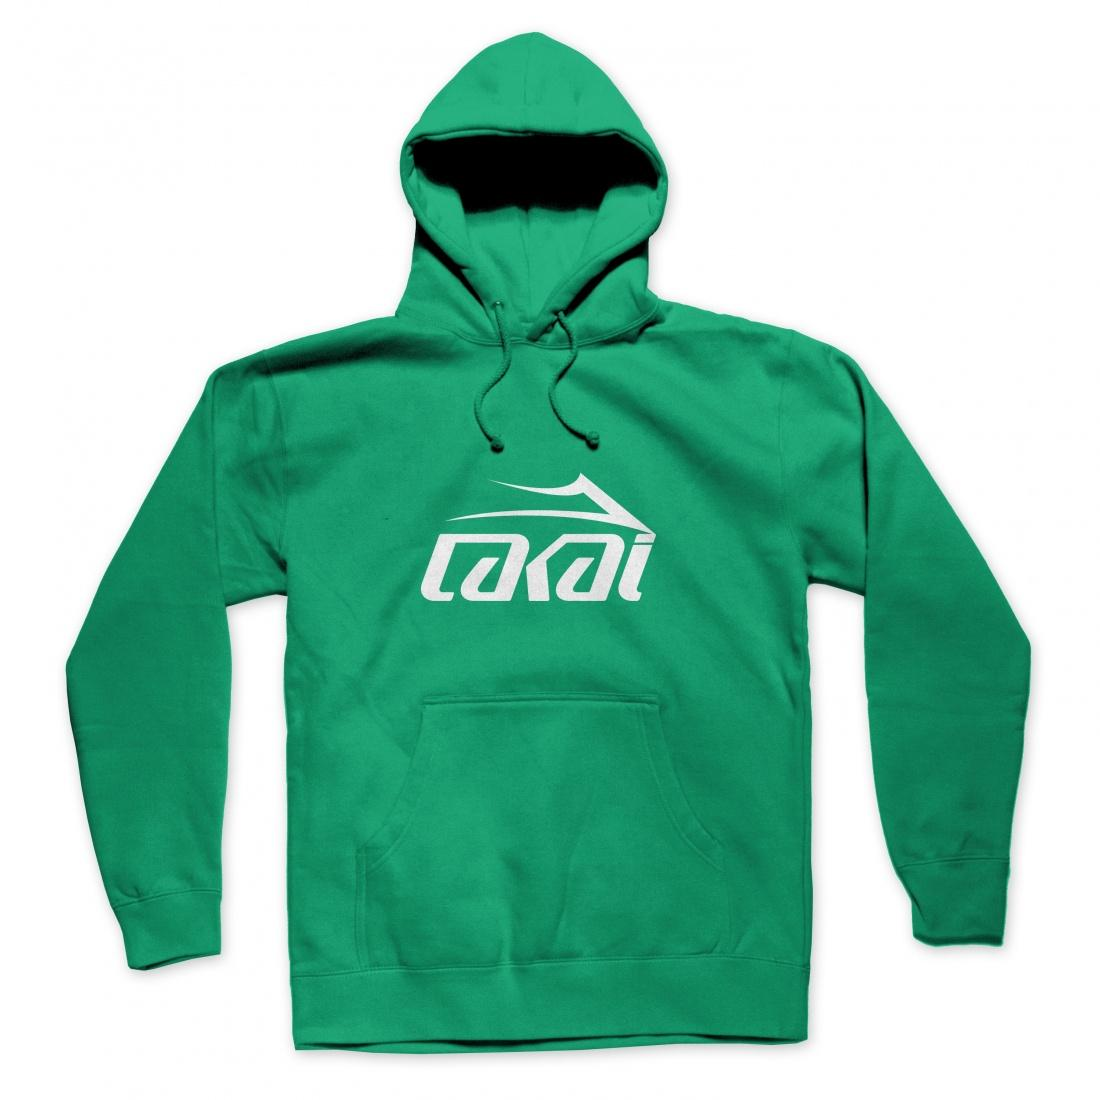 Lakai Толстовка Lakai Basic Pullover KELLY GREEN S kiniki kelly tanga mens